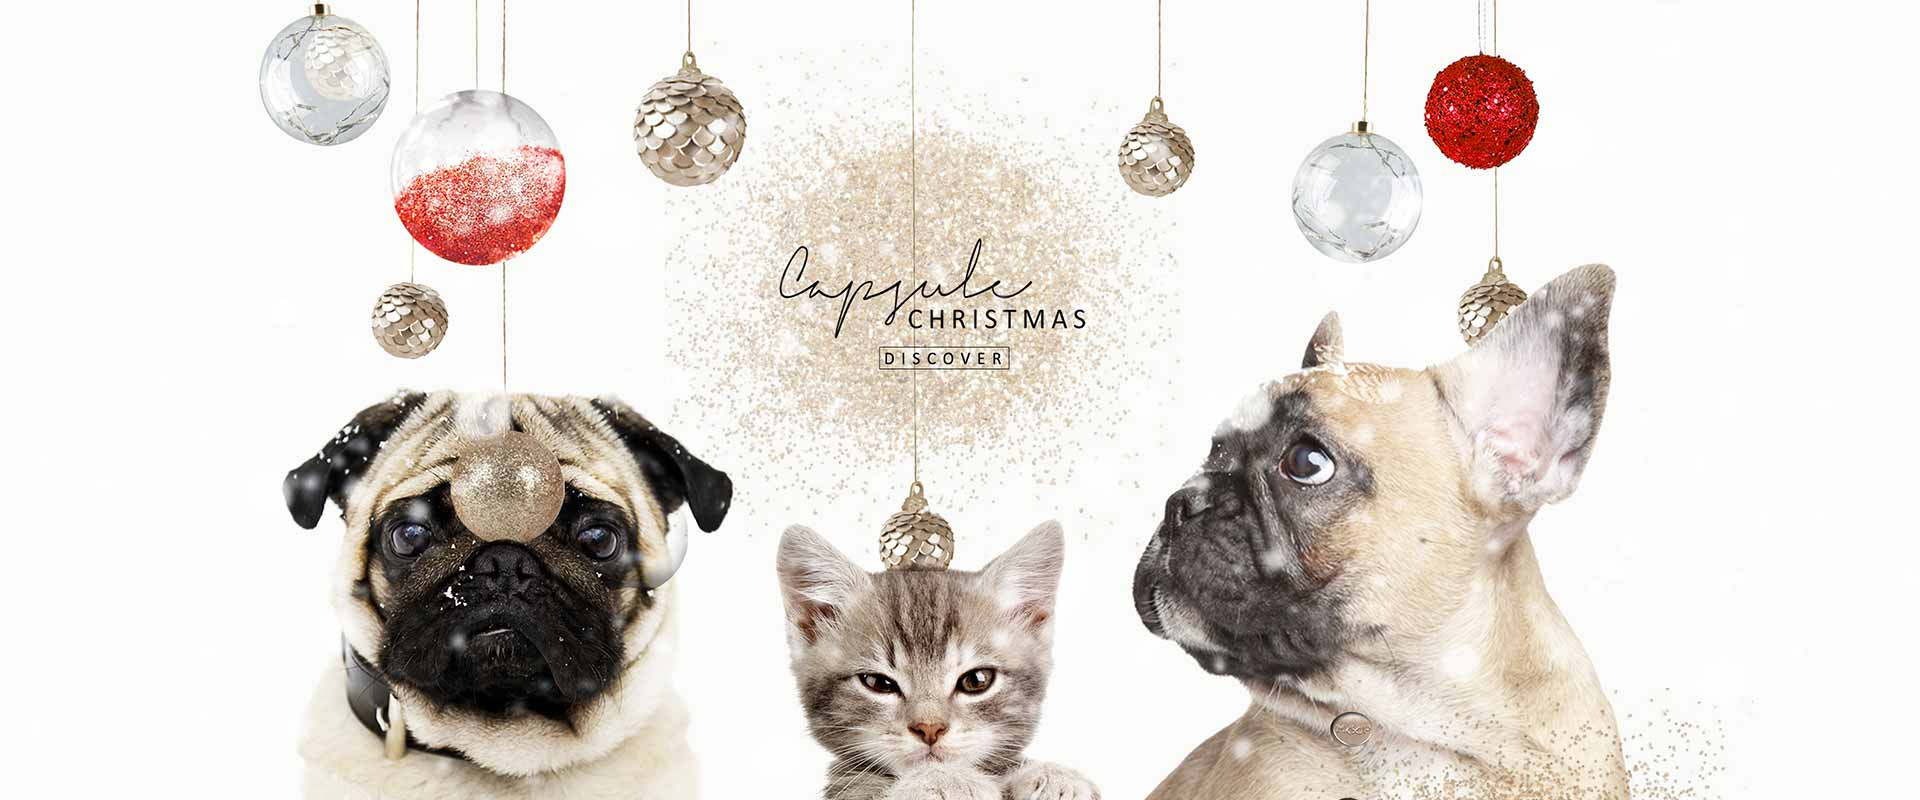 Milk & Pepper, Fashion And Accessories For Dogs & Cats - Christmas Collection 2019